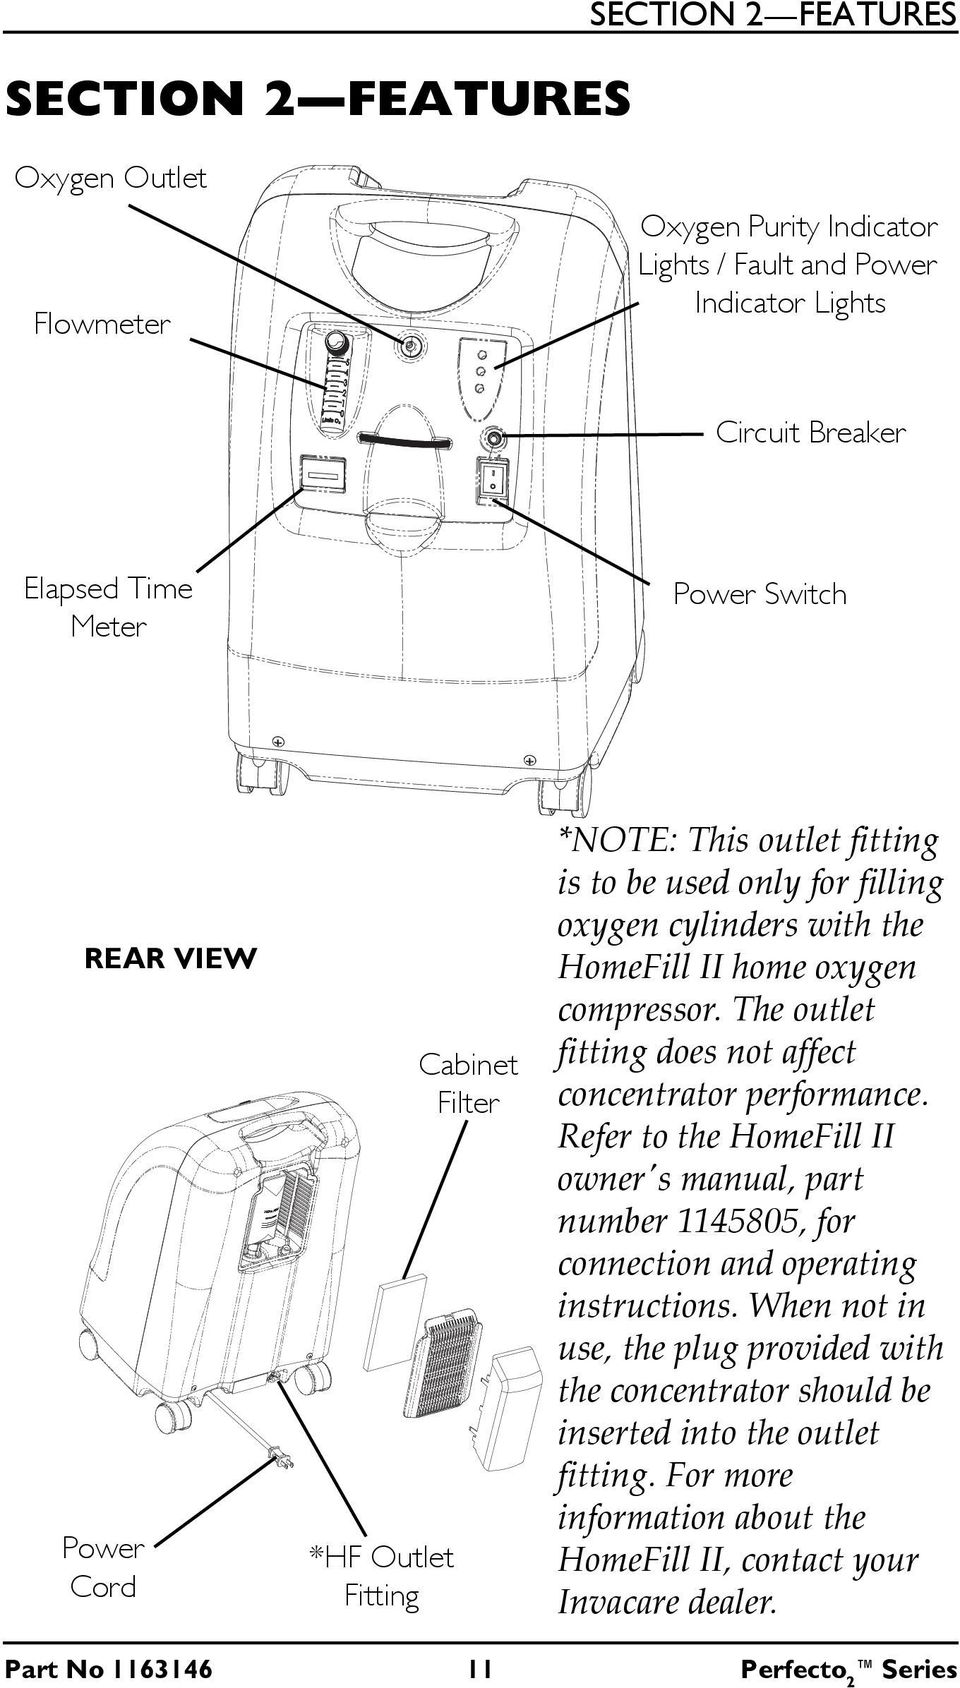 The outlet fitting does not affect concentrator performance. Refer to the HomeFill II ownerʹs manual, part number 1145805, for connection and operating instructions.